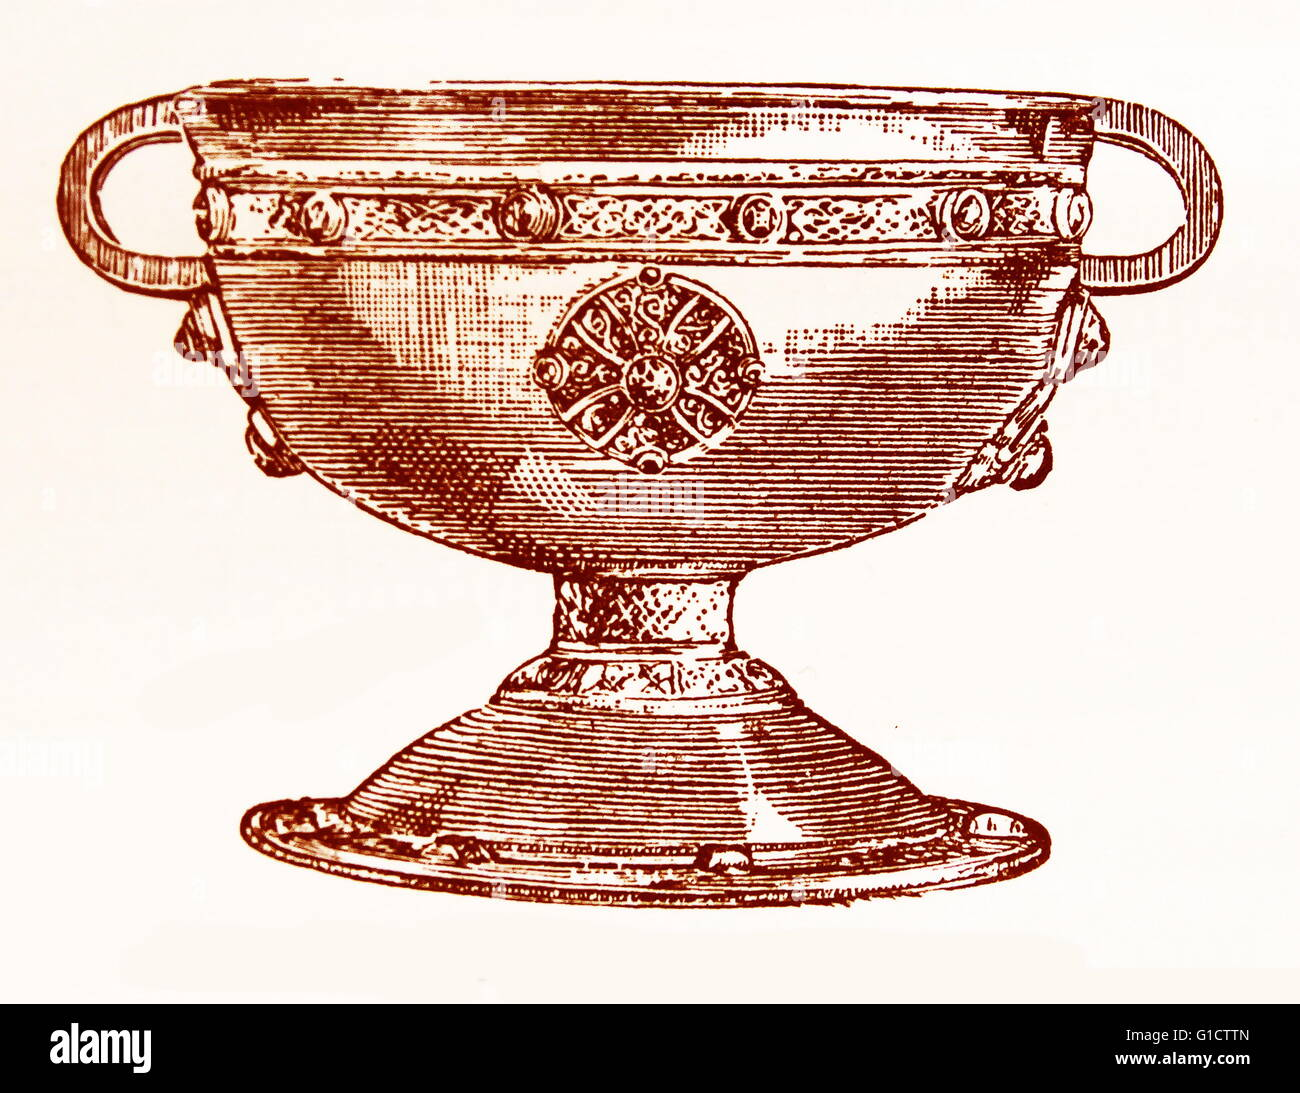 the Ardagh Chalice; Celtic metalwork goblet from the 8th - 9th centuries. Found in 1868; it is now on display in - Stock Image